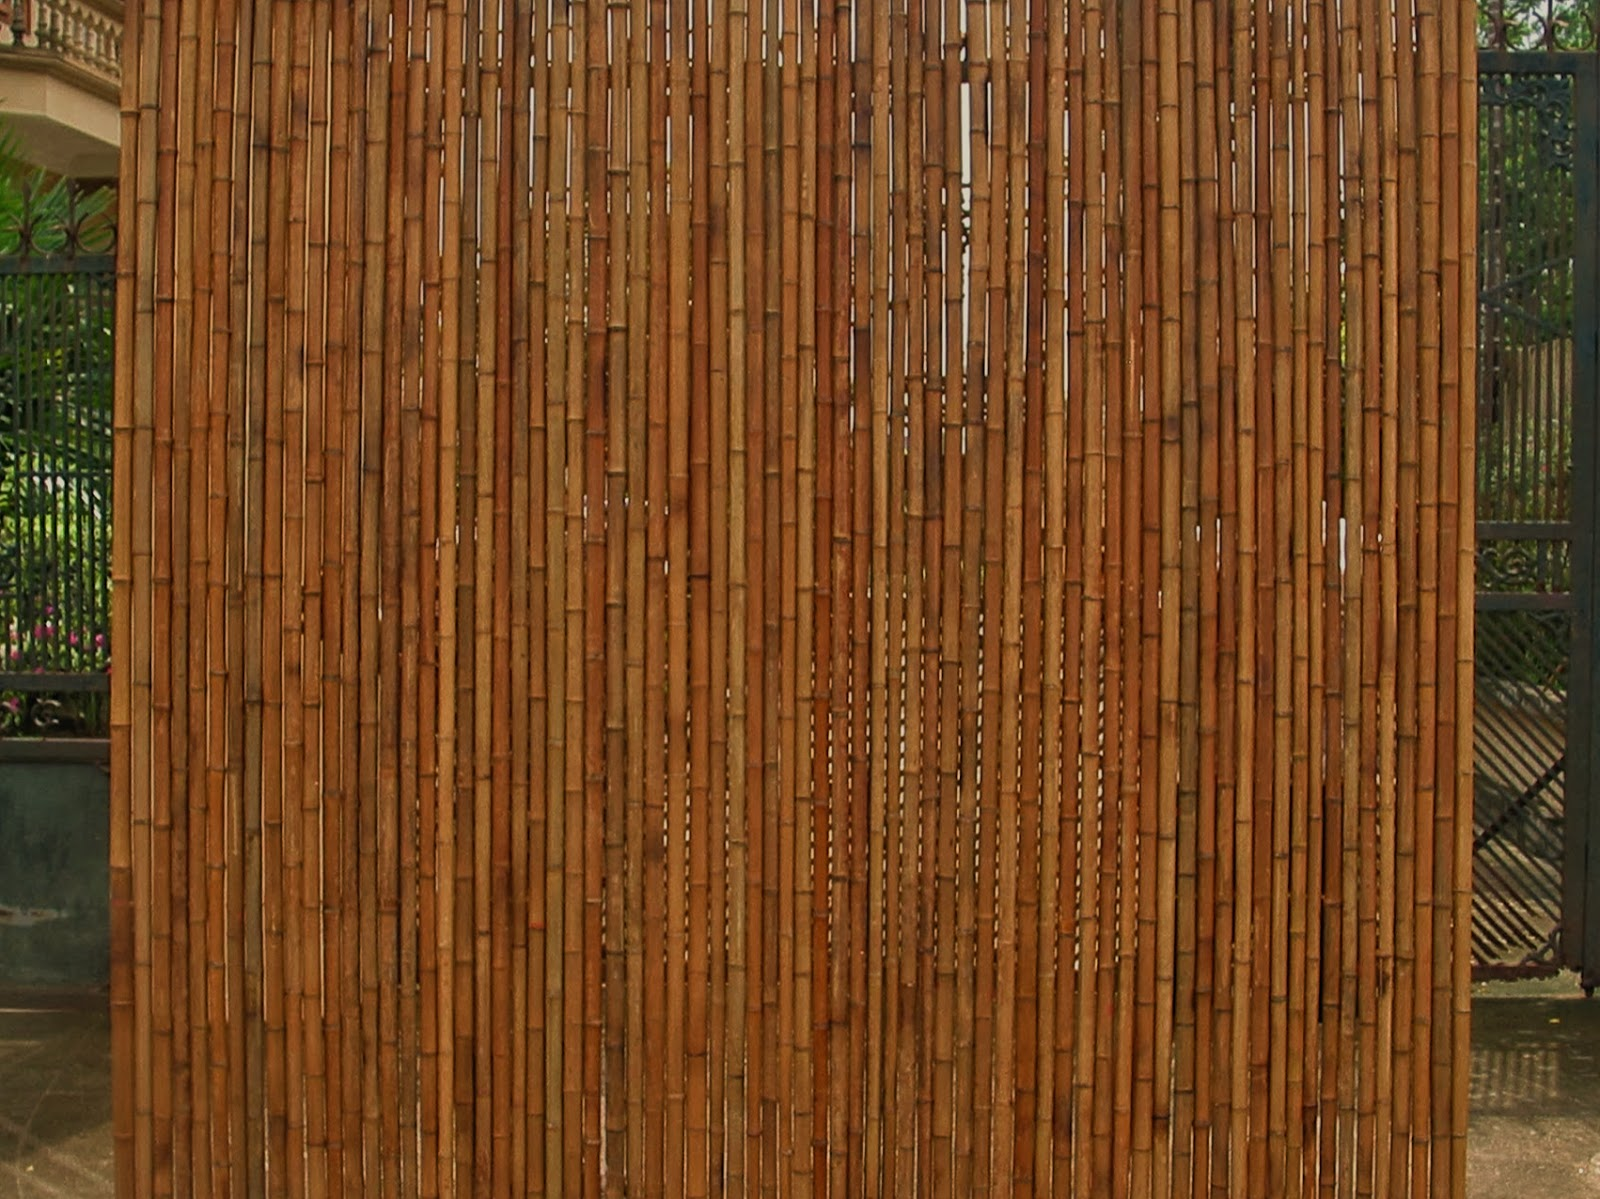 Rolled bamboo fences bamboo fencing big bamboo poles bamboo high quality bamboo fencing best bamboo cane bound as known highest bamboo cane from southeatern asian most quality bamboo growth top quality bamboo baanklon Gallery